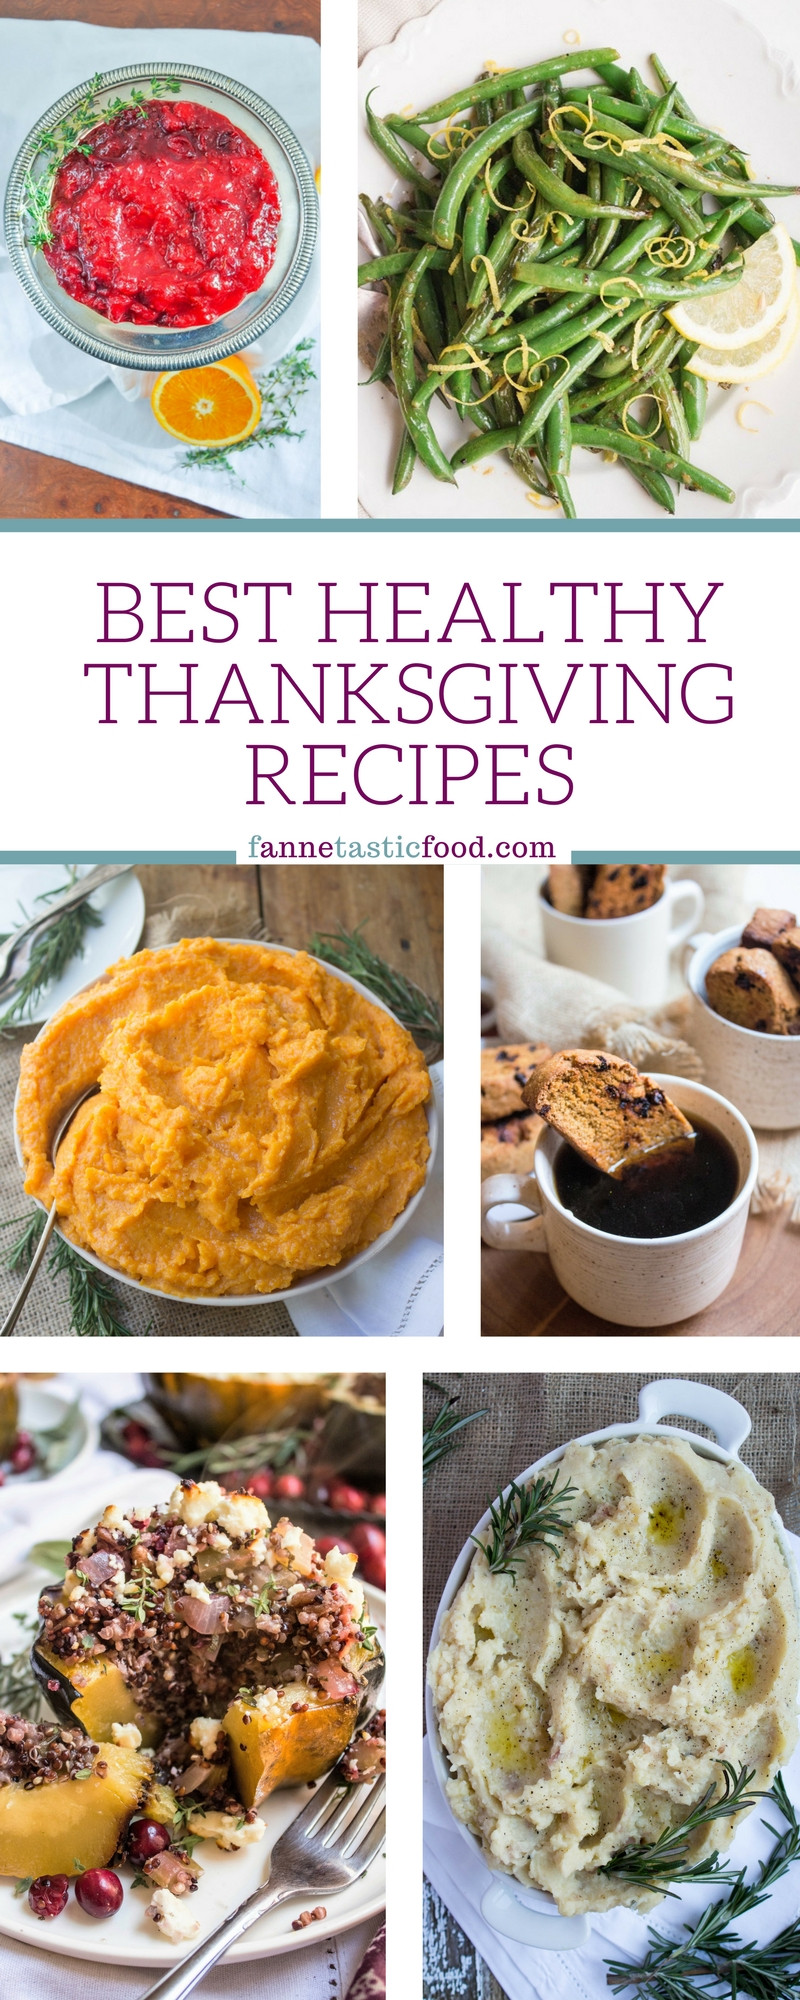 Quick And Easy Thanksgiving Recipes  Best Healthy Thanksgiving Recipes